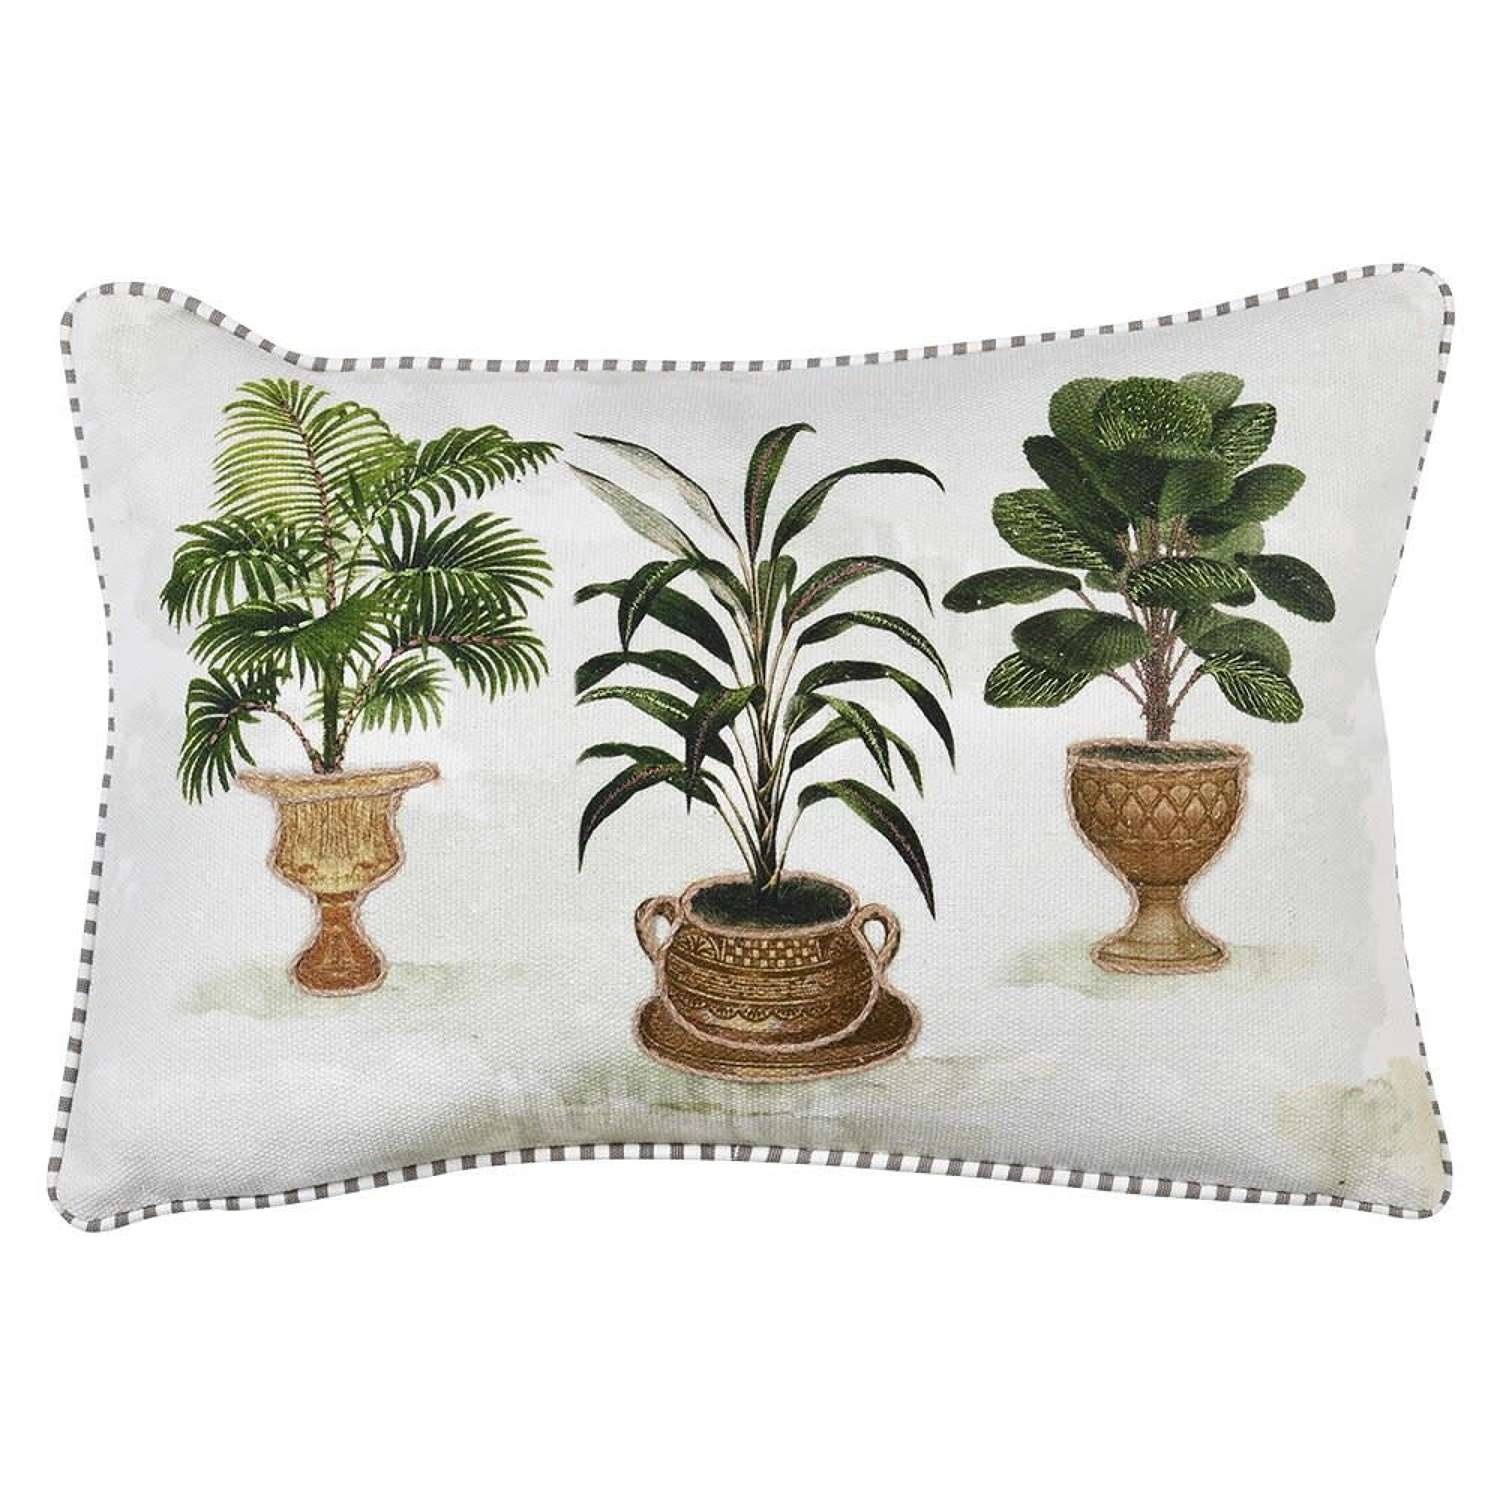 Colonial oblong cushion cover - trio of plants